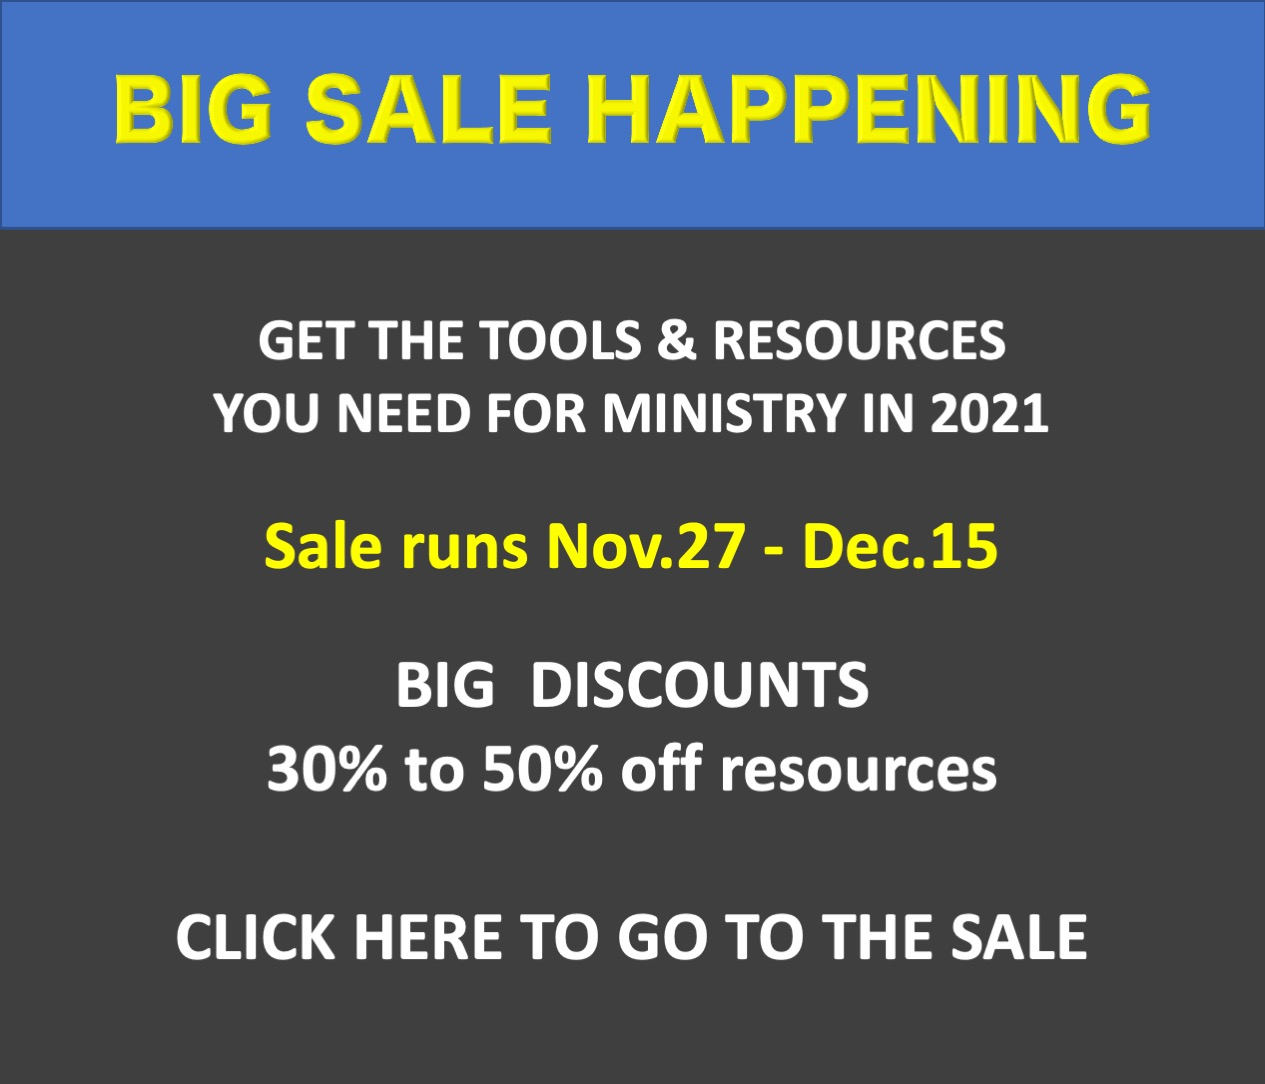 Big Resource Sale